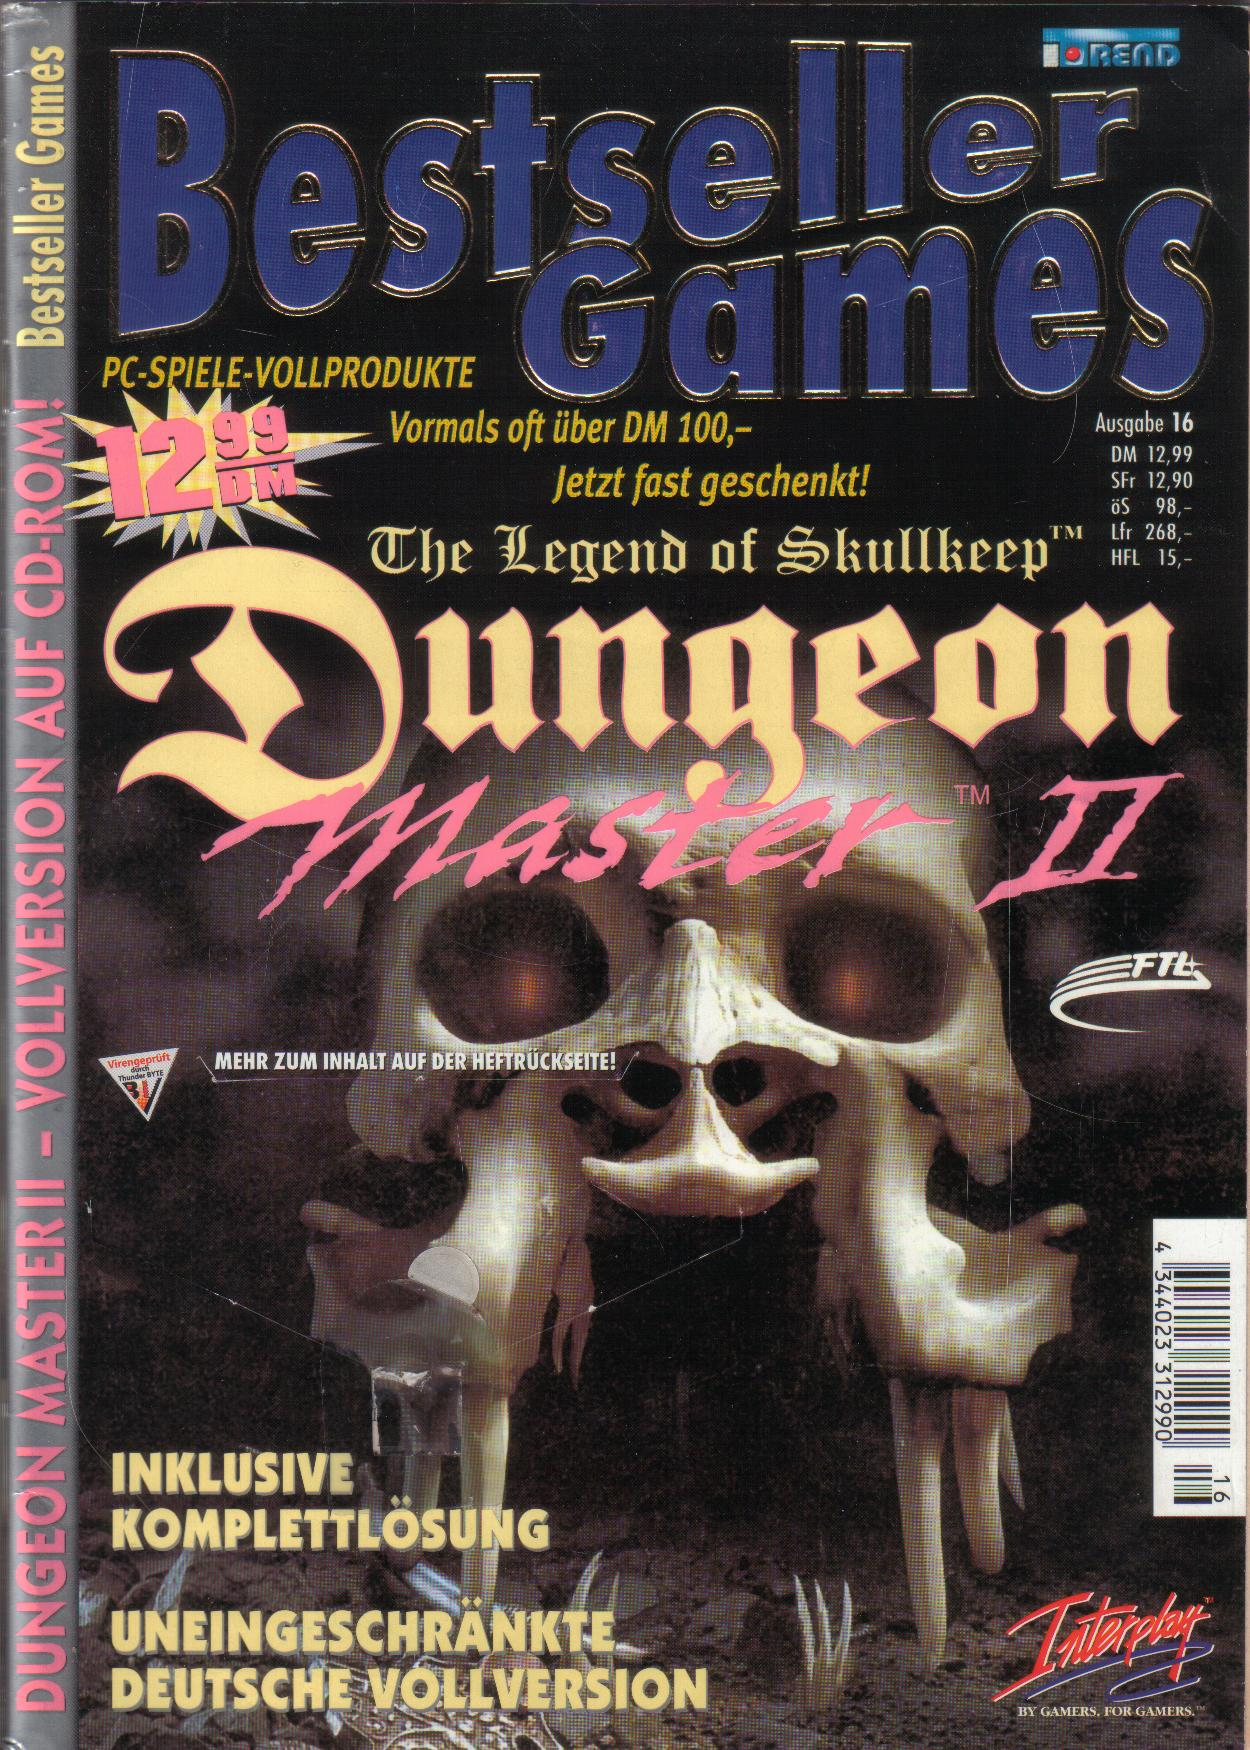 Dungeon Master II for PC (German, Best Seller Games) Page 1